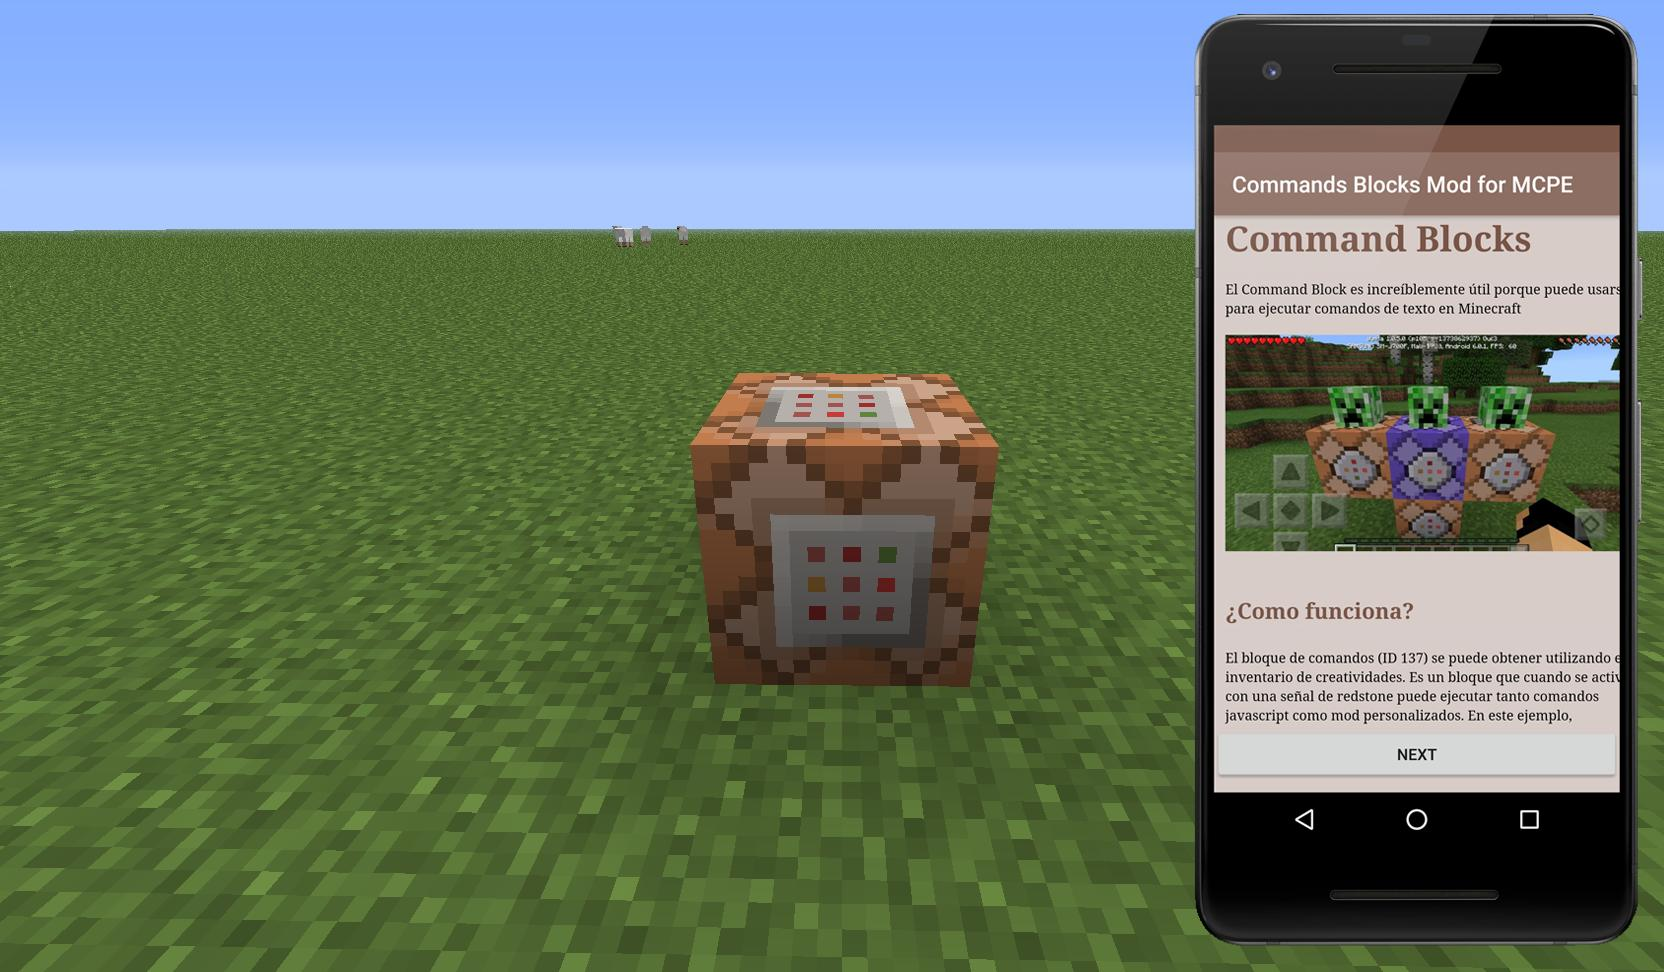 Commands Blocks Mod For Mcpe For Android Apk Download